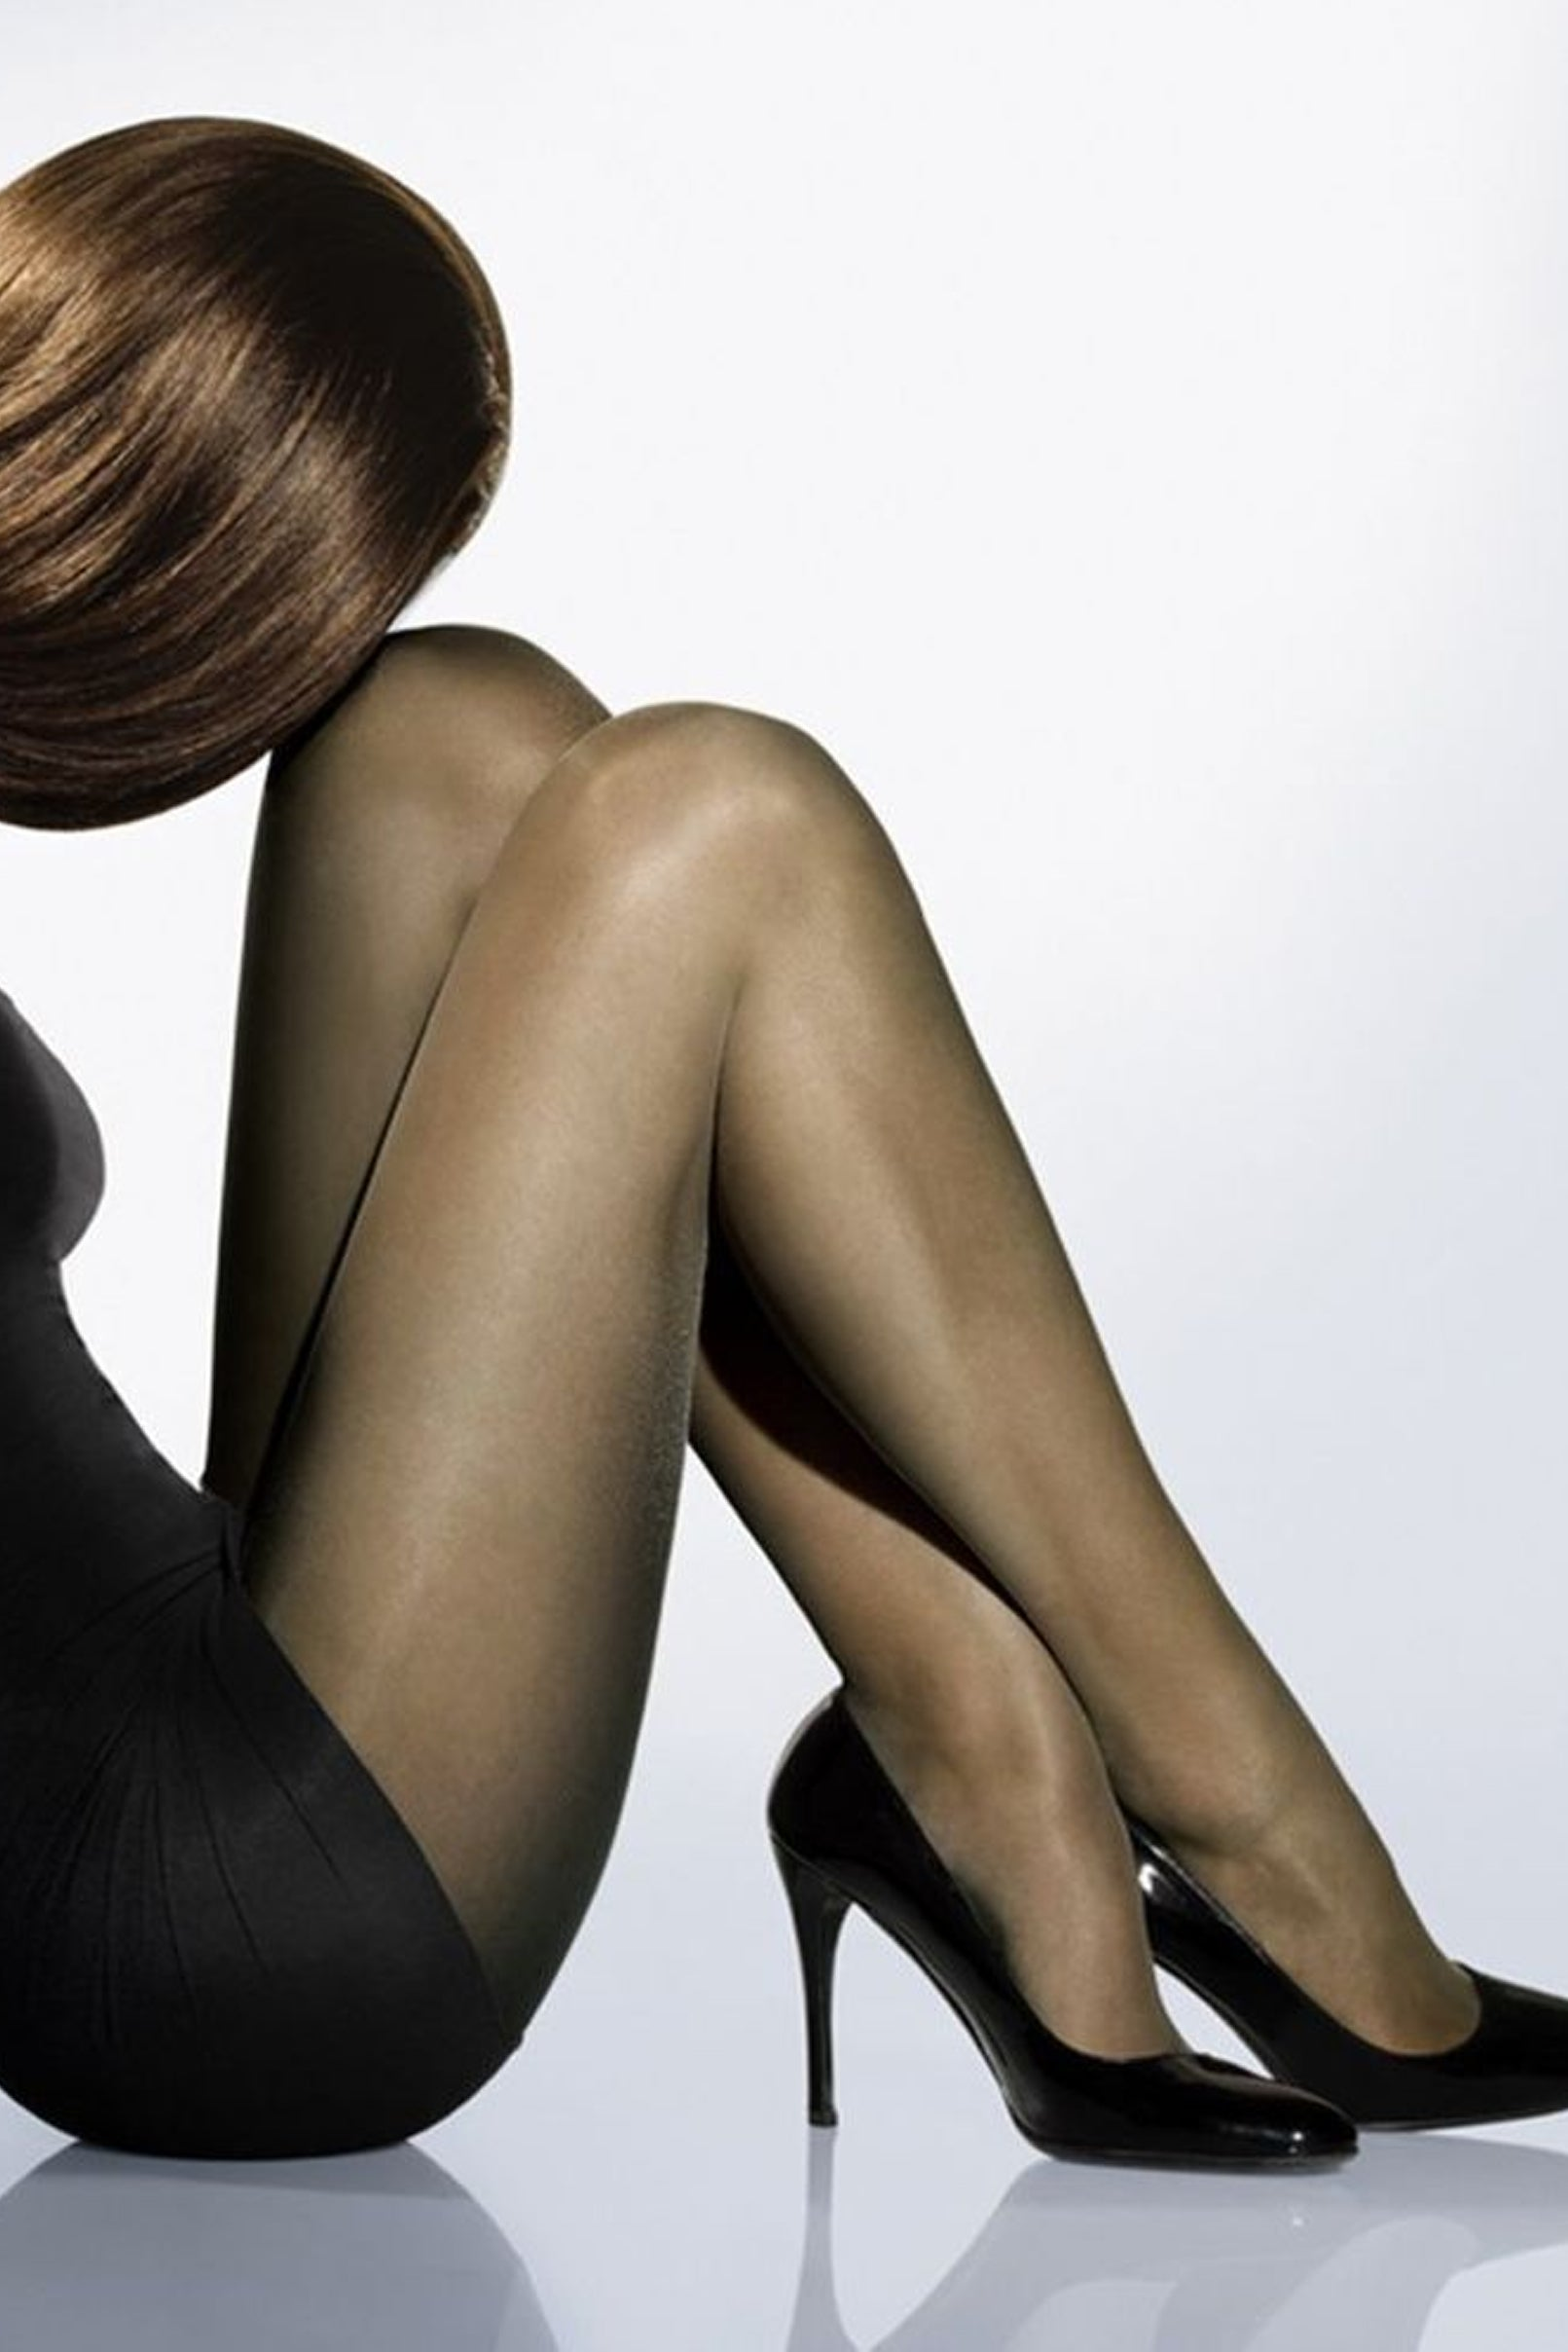 Wolford Aura 5 Tights